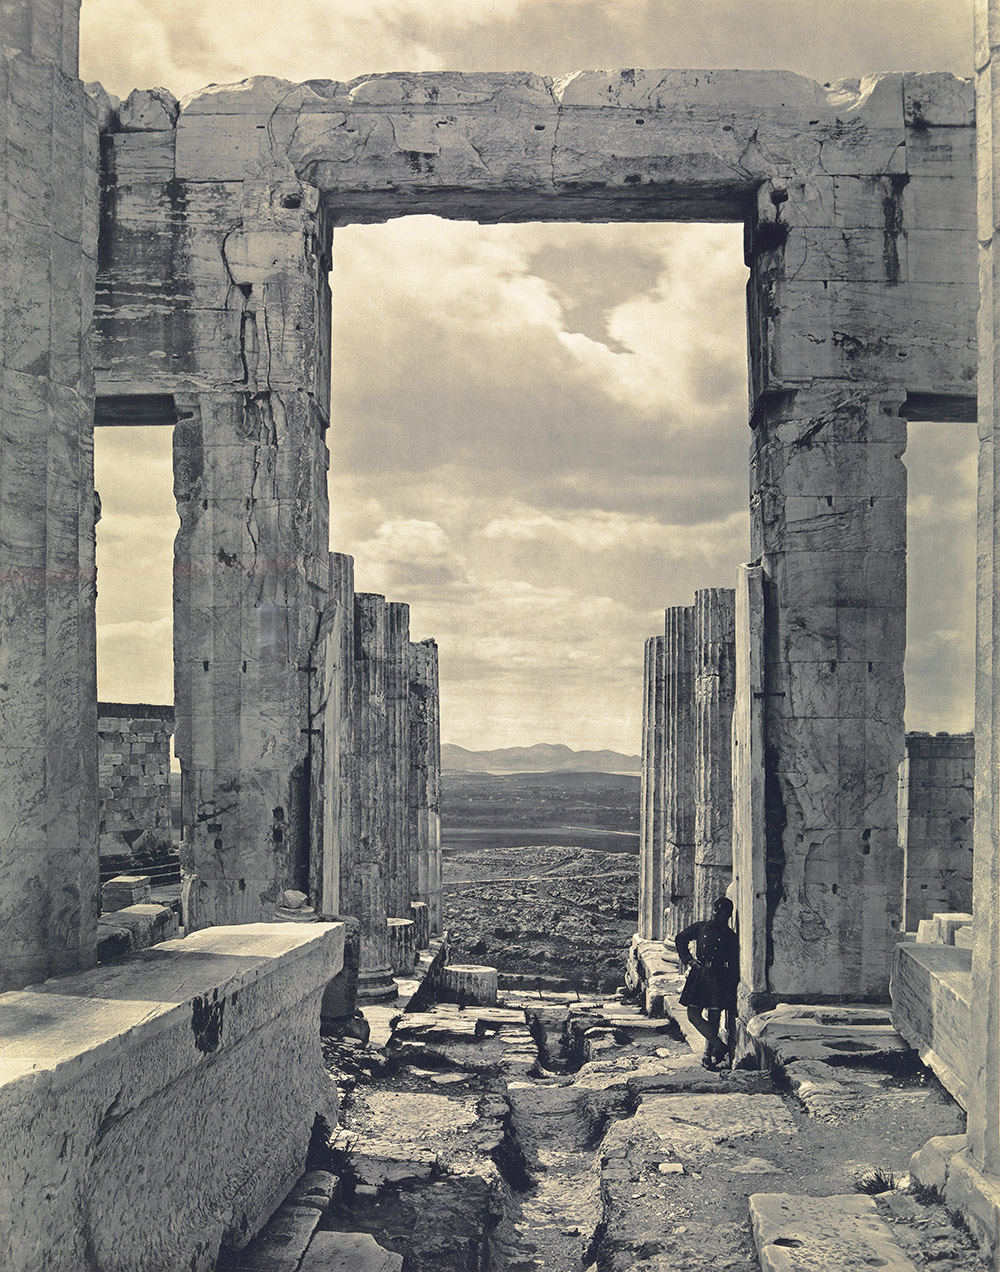 Propylaea to the Acropolis, Athens, c. 1890. Photograph by Braun, Clément & Cie.